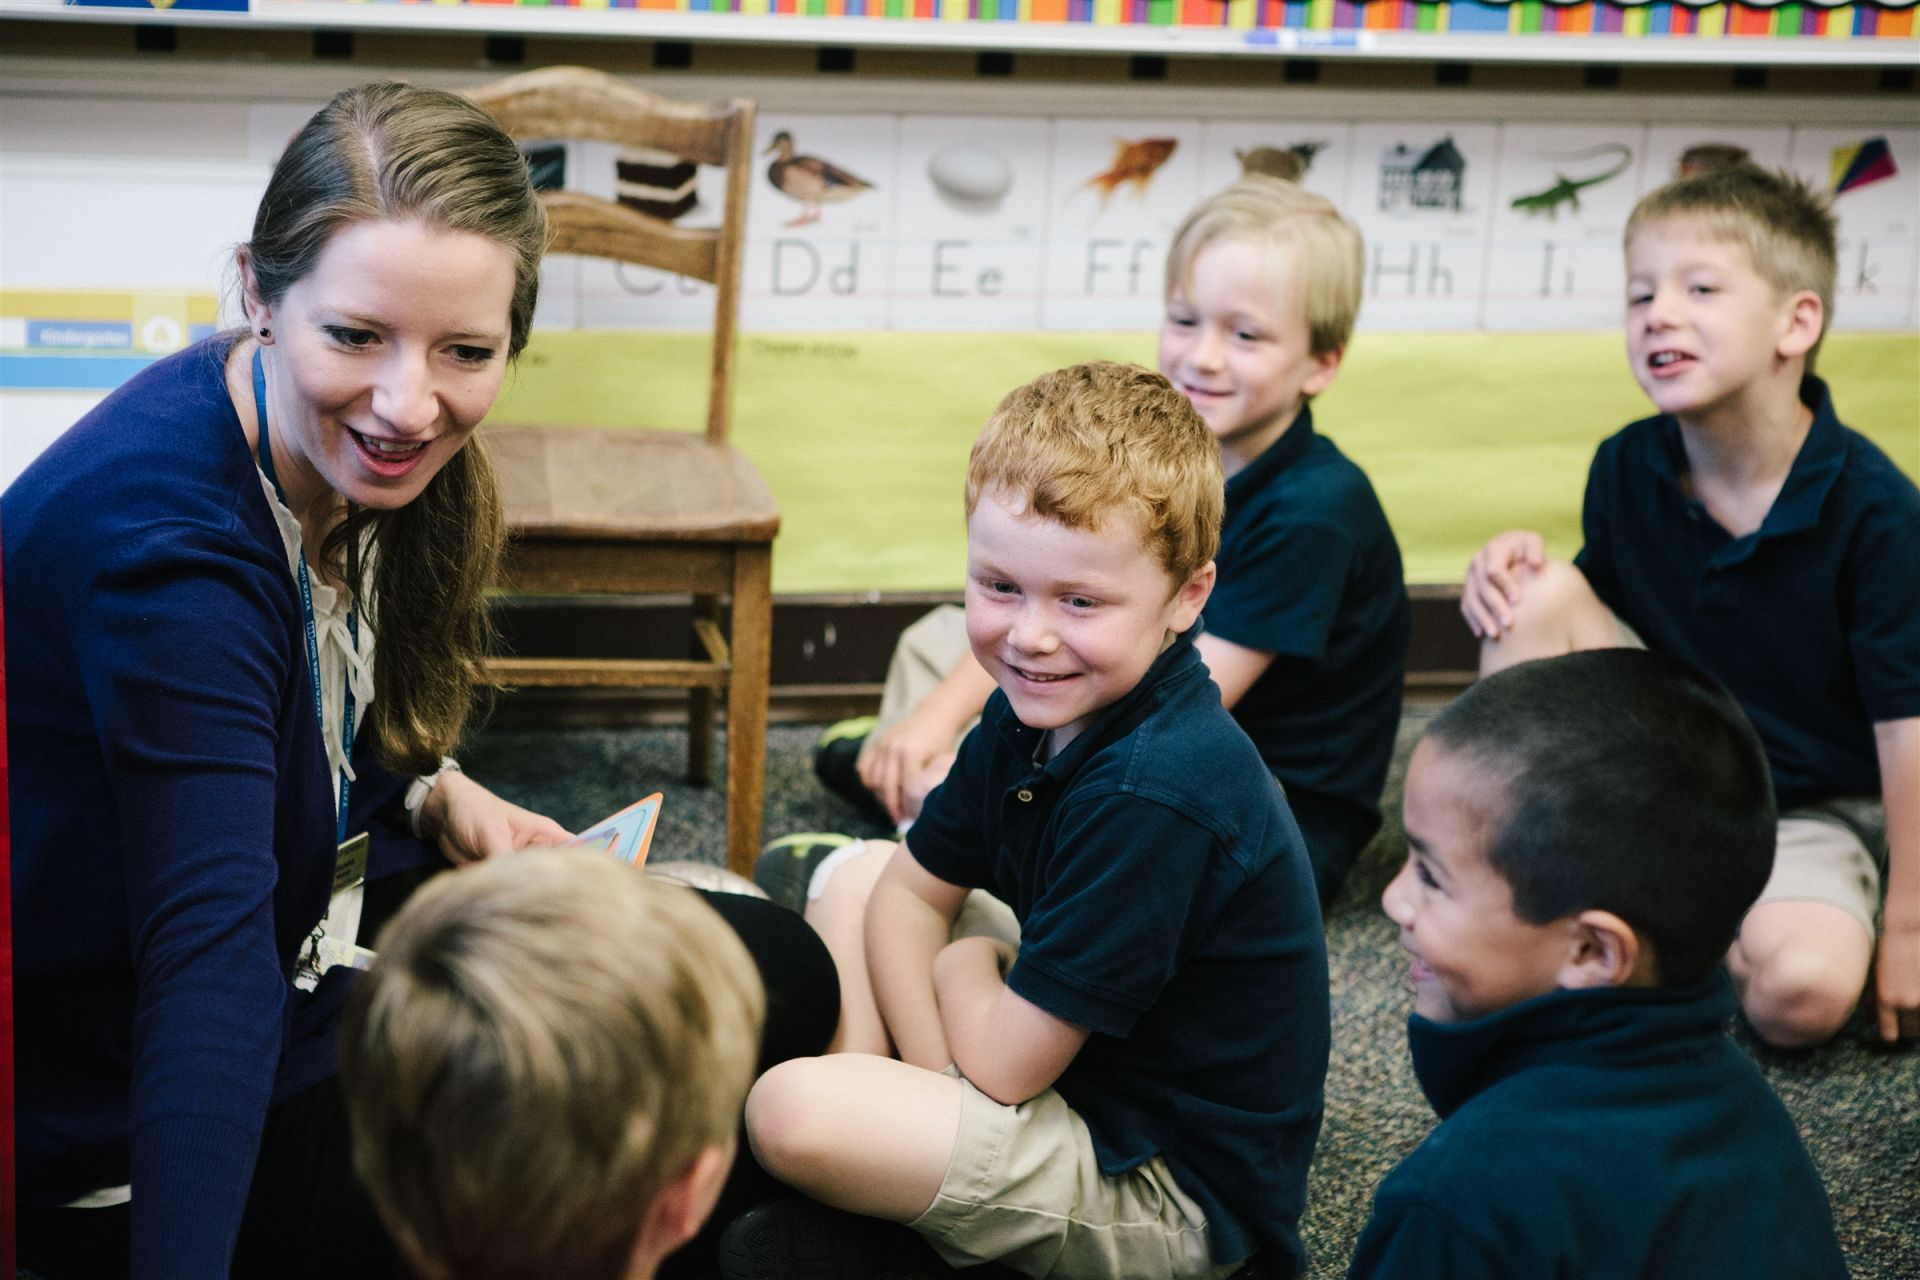 Small class sizes allow teachers to provide students with individual attention.